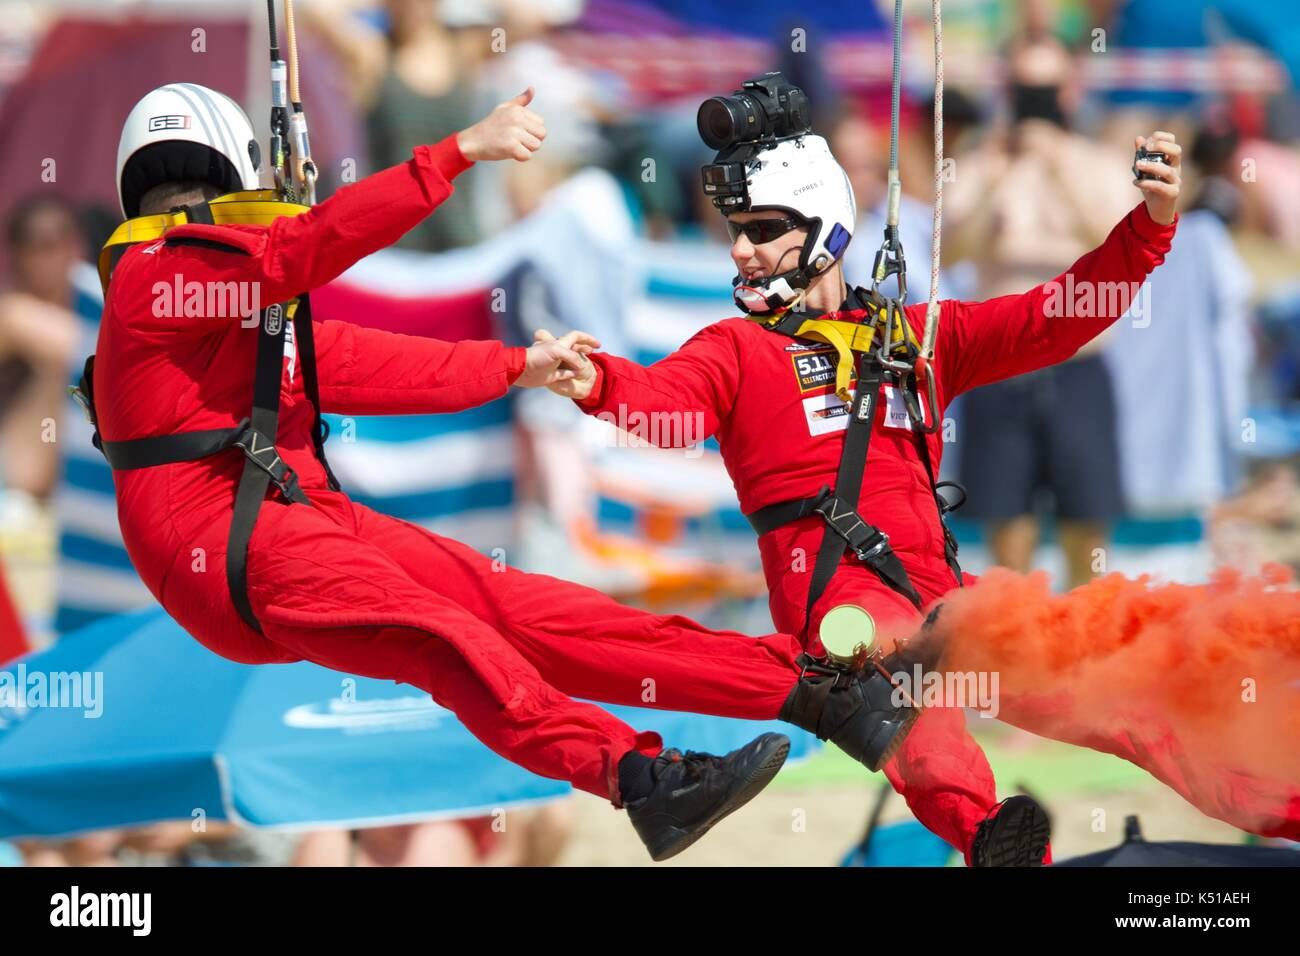 Two members of the Red Devils Parachute Team enjoying a ride on the Bournemouth Zip Wire - Stock Image